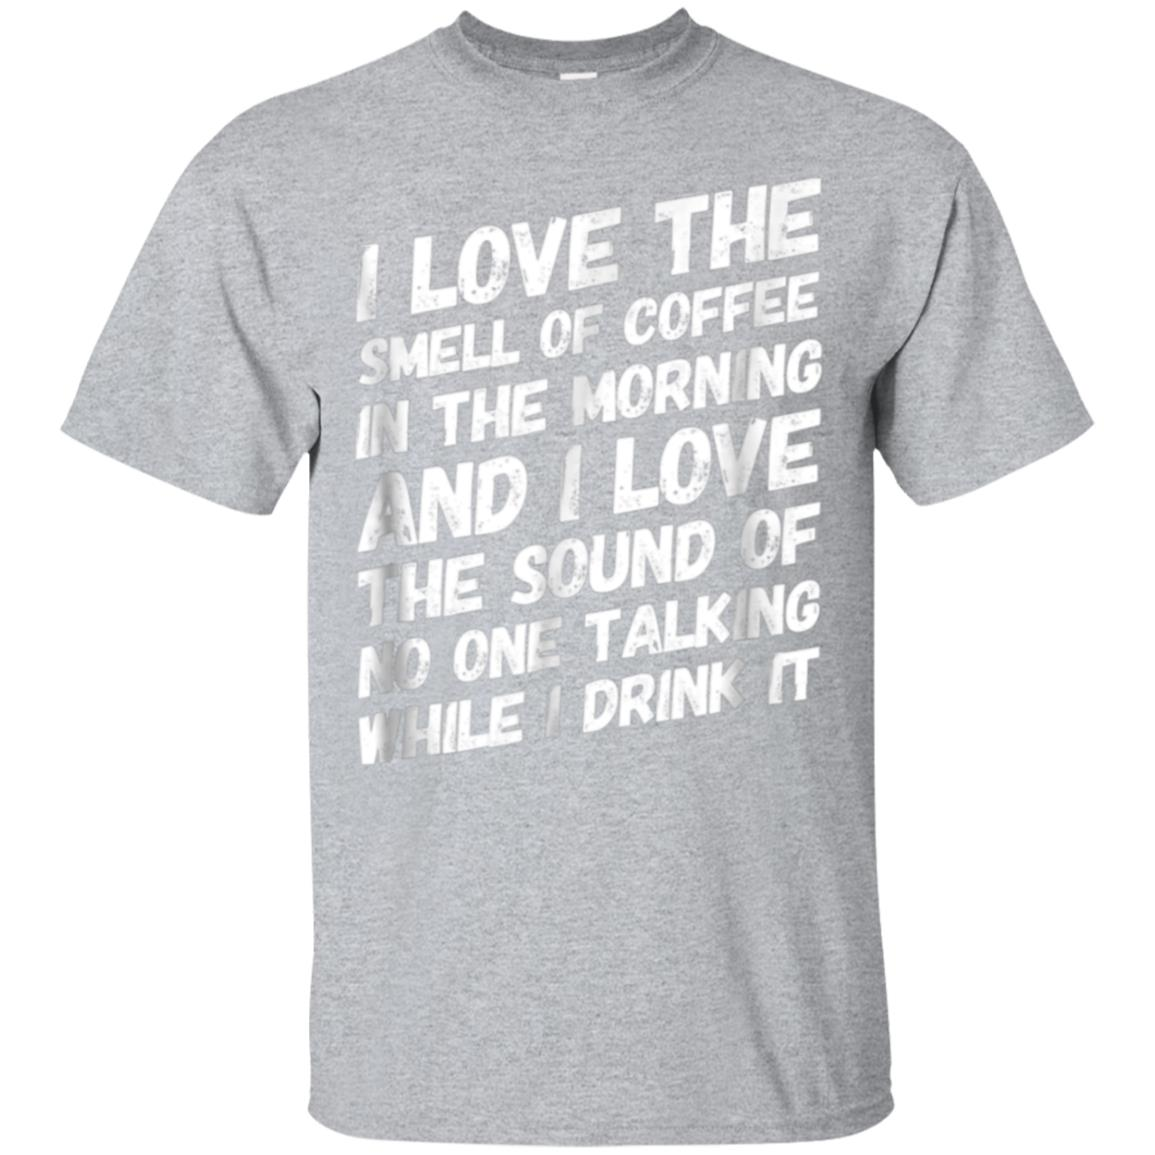 Coffee TShirt I Love The Smell Of Coffee In The Morning And 99promocode